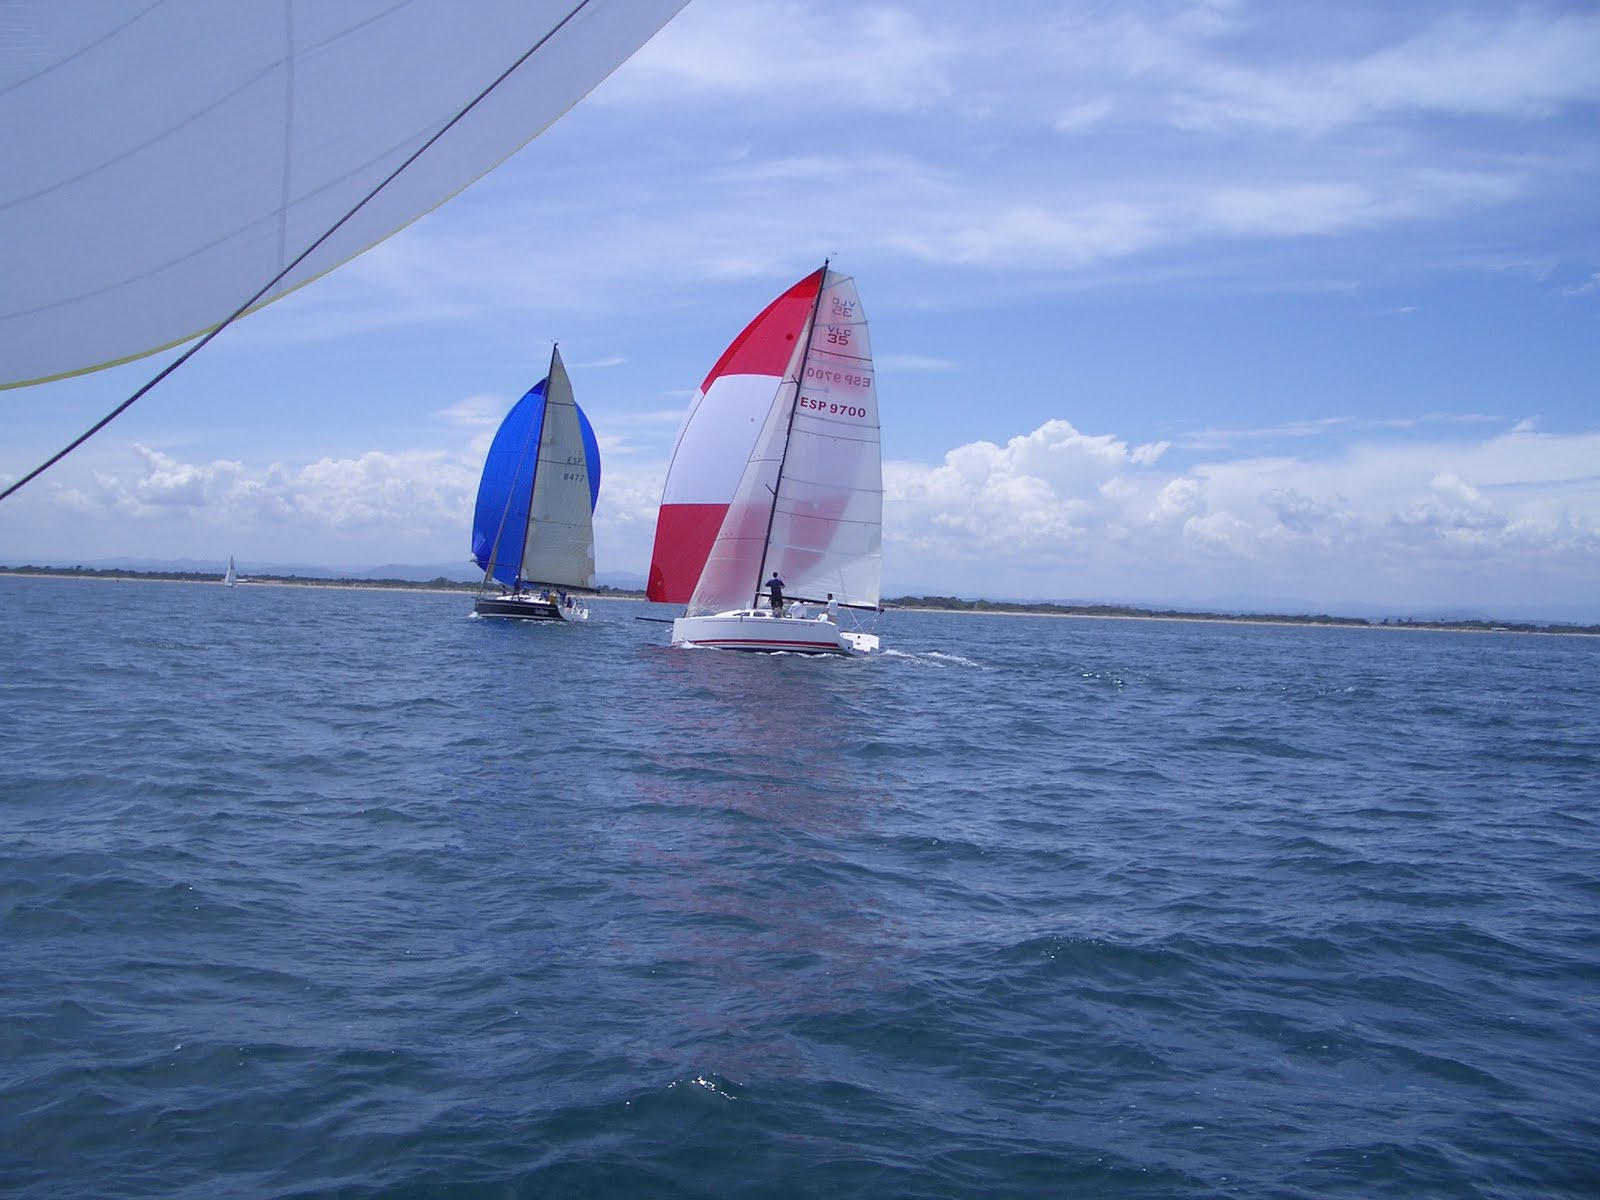 Her surprising speed left bigger boats like Dufour 44R, Dehler 45, ...